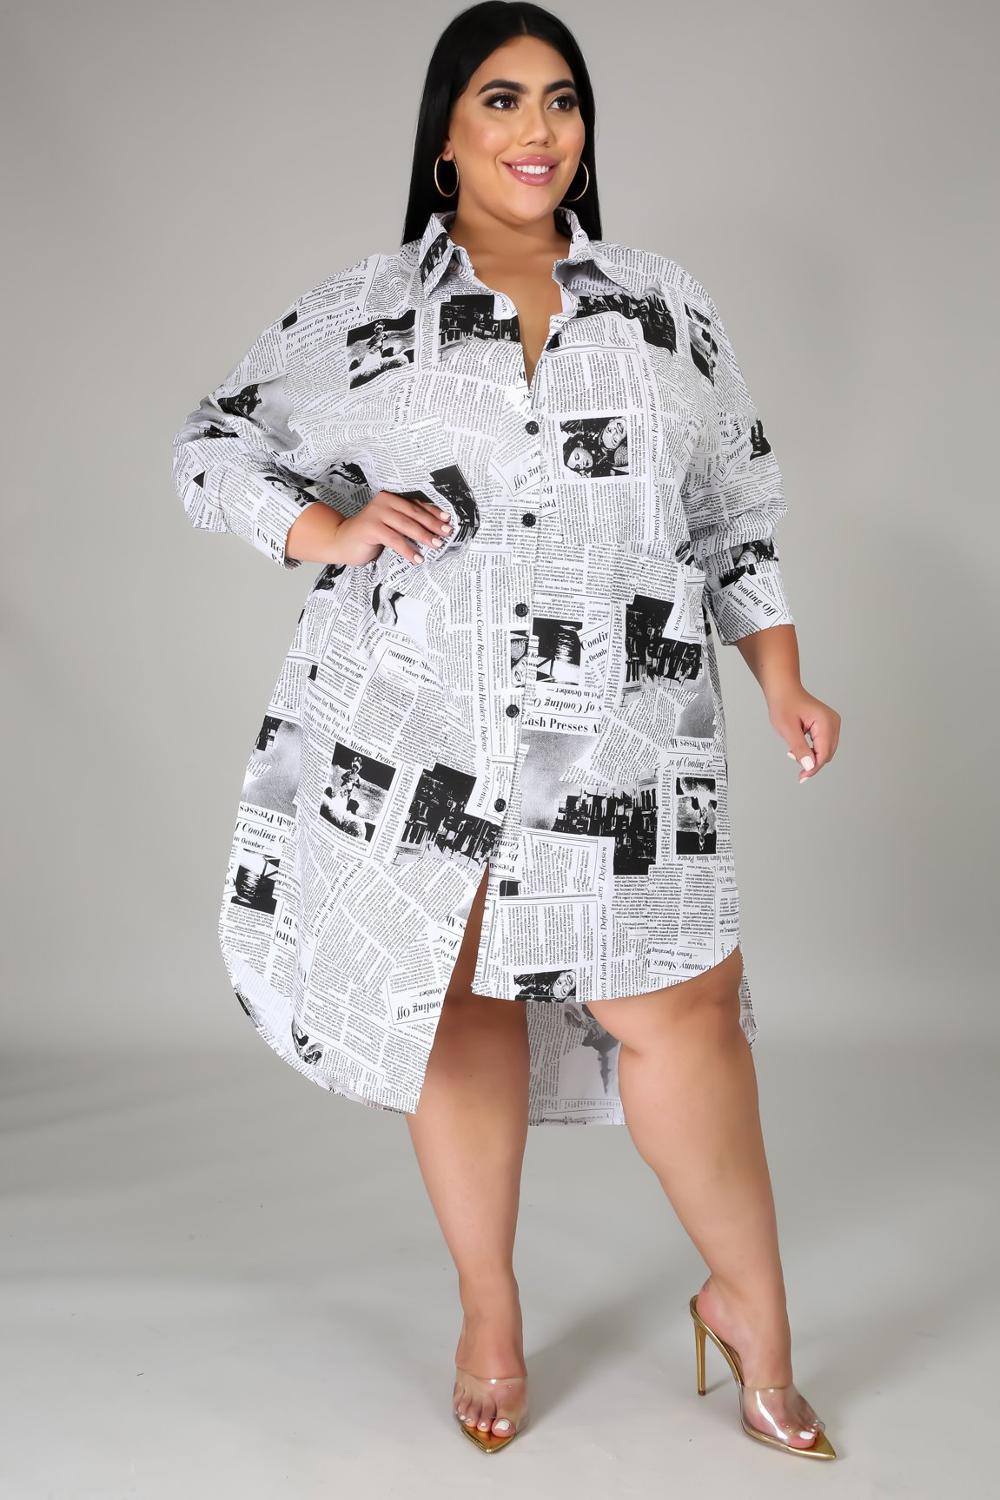 Coolhappy 2021 Plus SizeSpring Casual Newspaper Printed White Loose Shirt Blouse Women Clothes Long Sleeve Vintage Party Dress Dresses  4